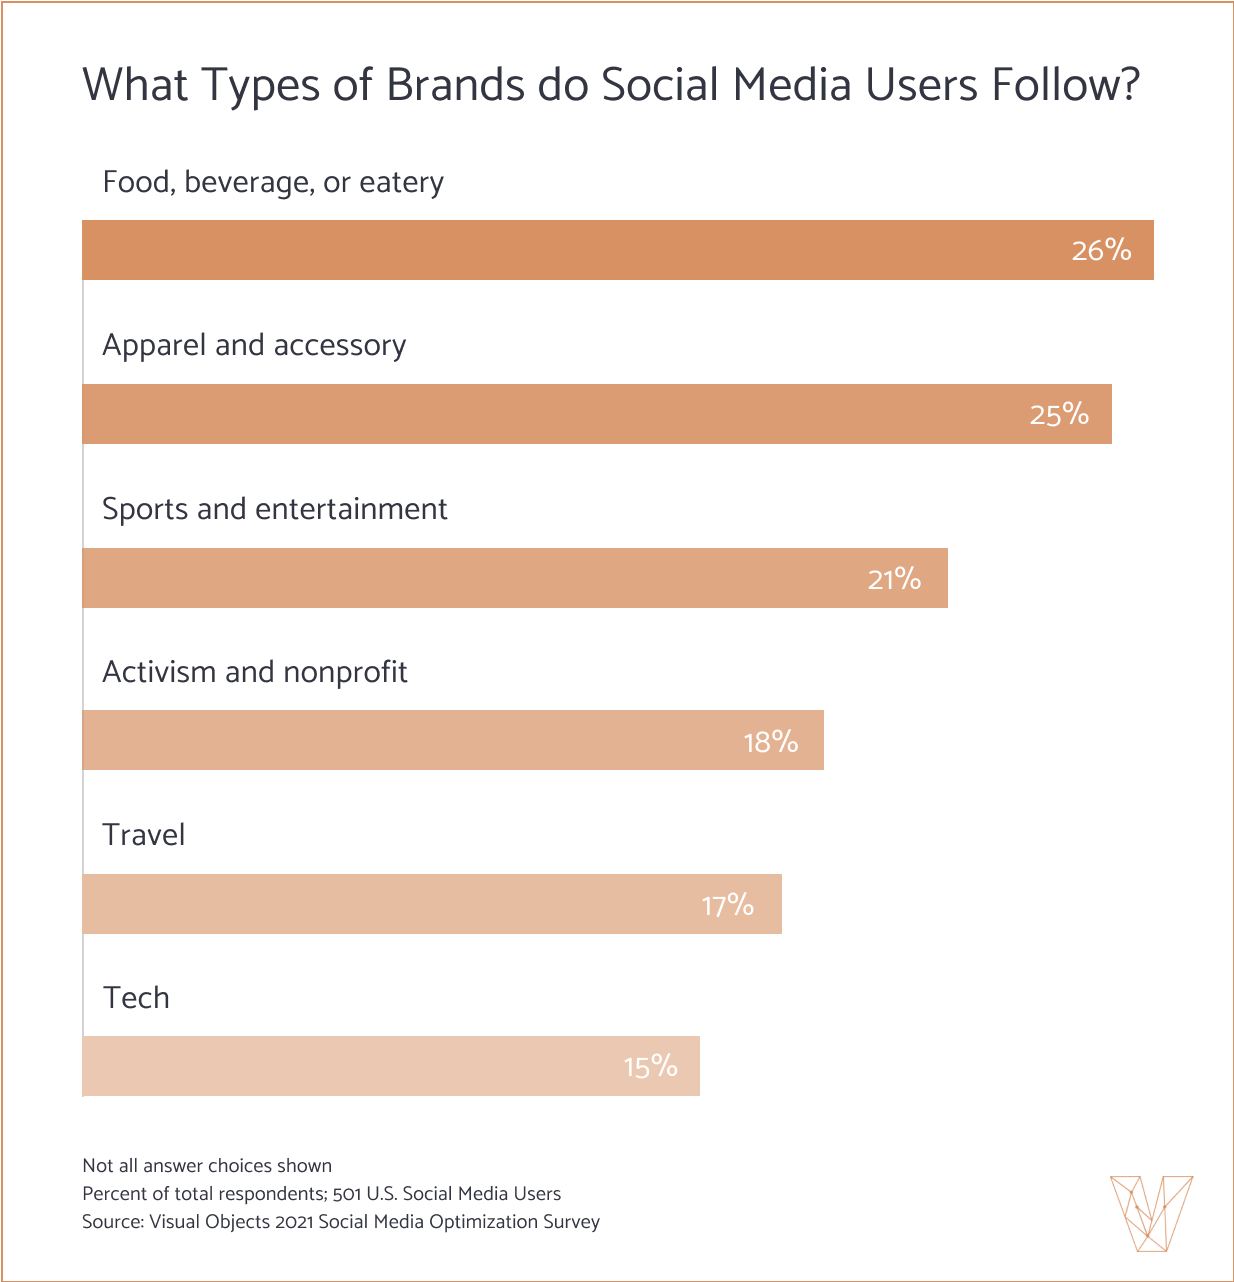 What Types of Brands Do Social Media Users Follow Bar Graph